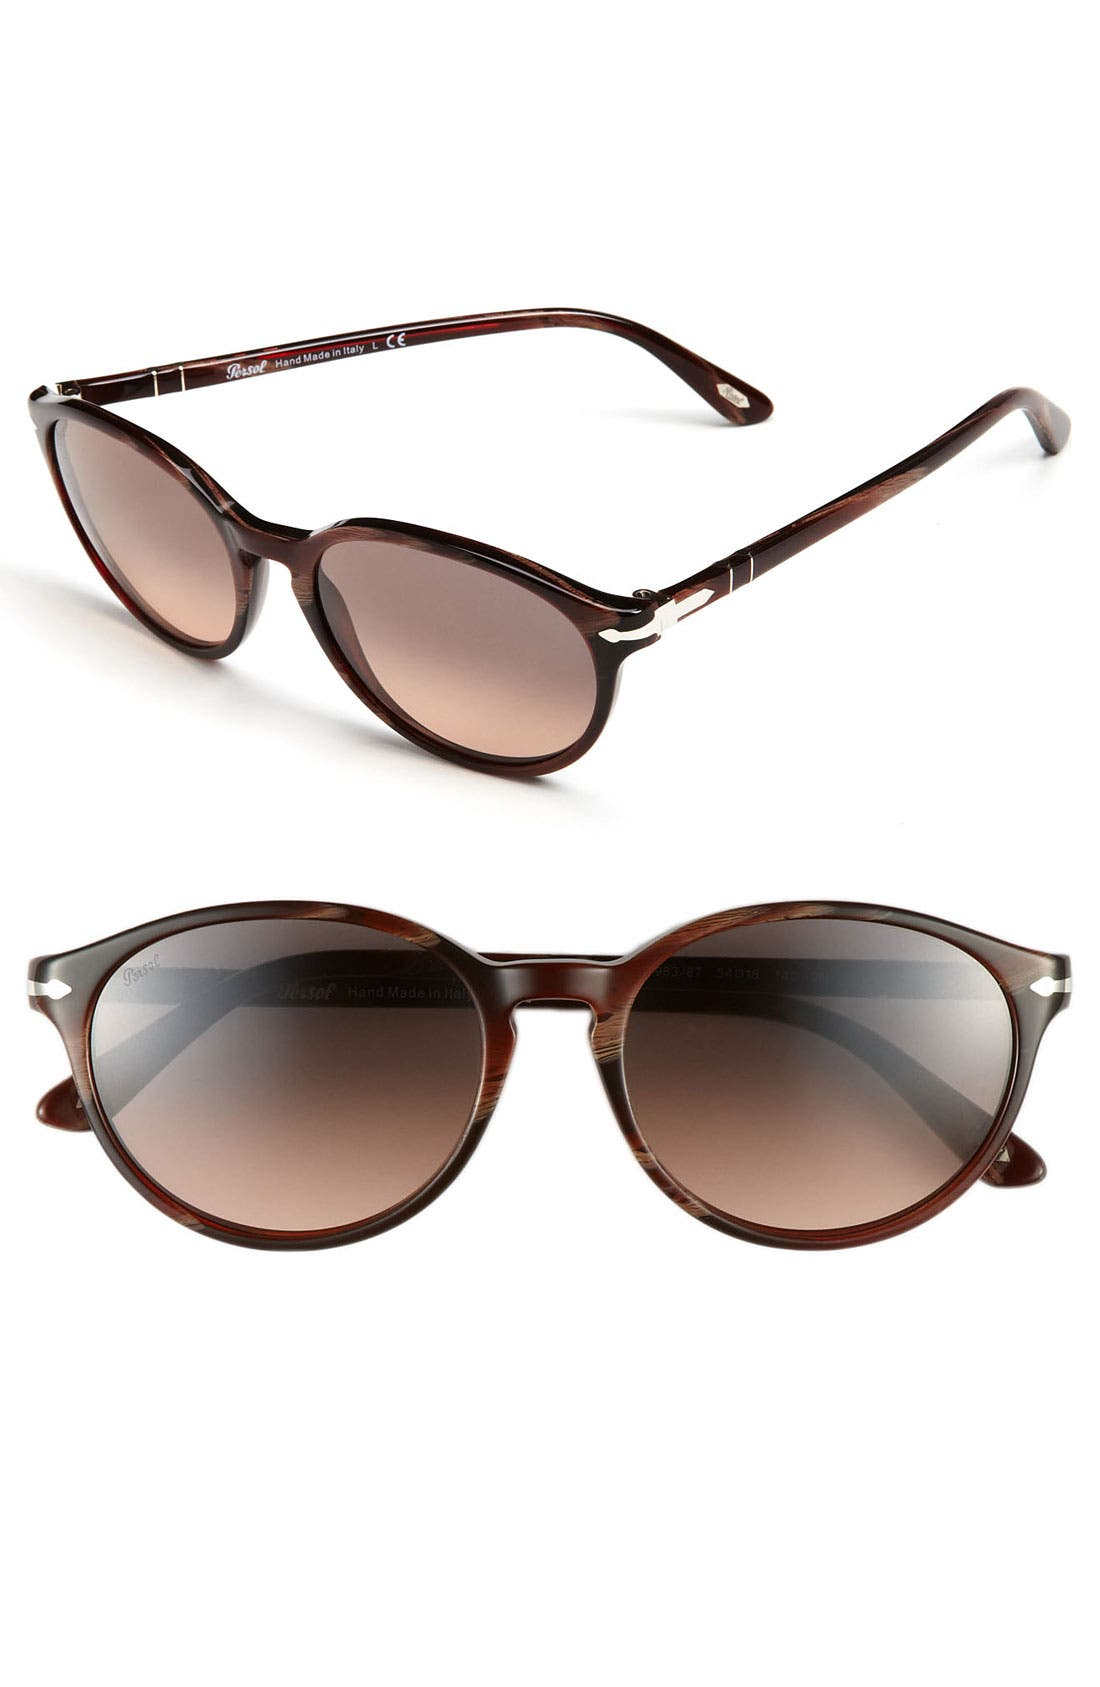 Main Image - Persol 51mm Keyhole Sunglasses